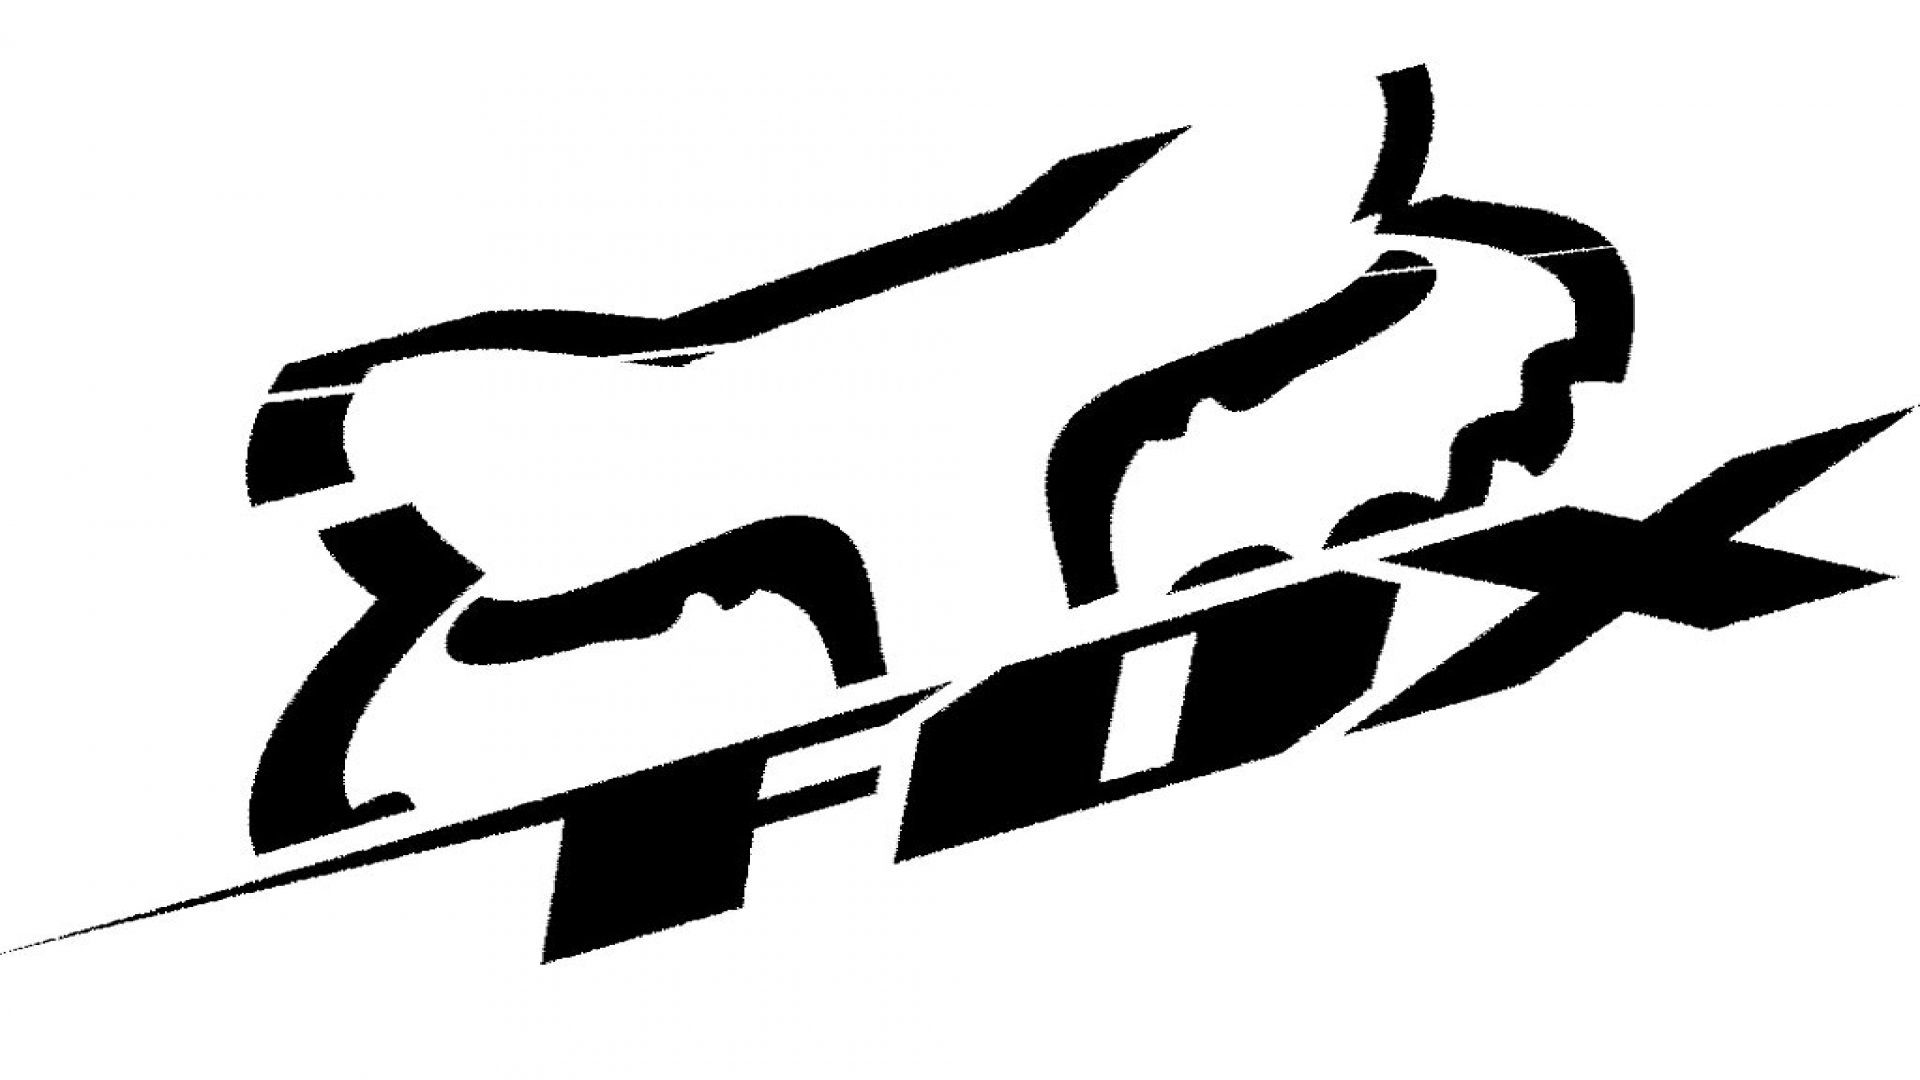 Fox racing logos pictures - photo#45